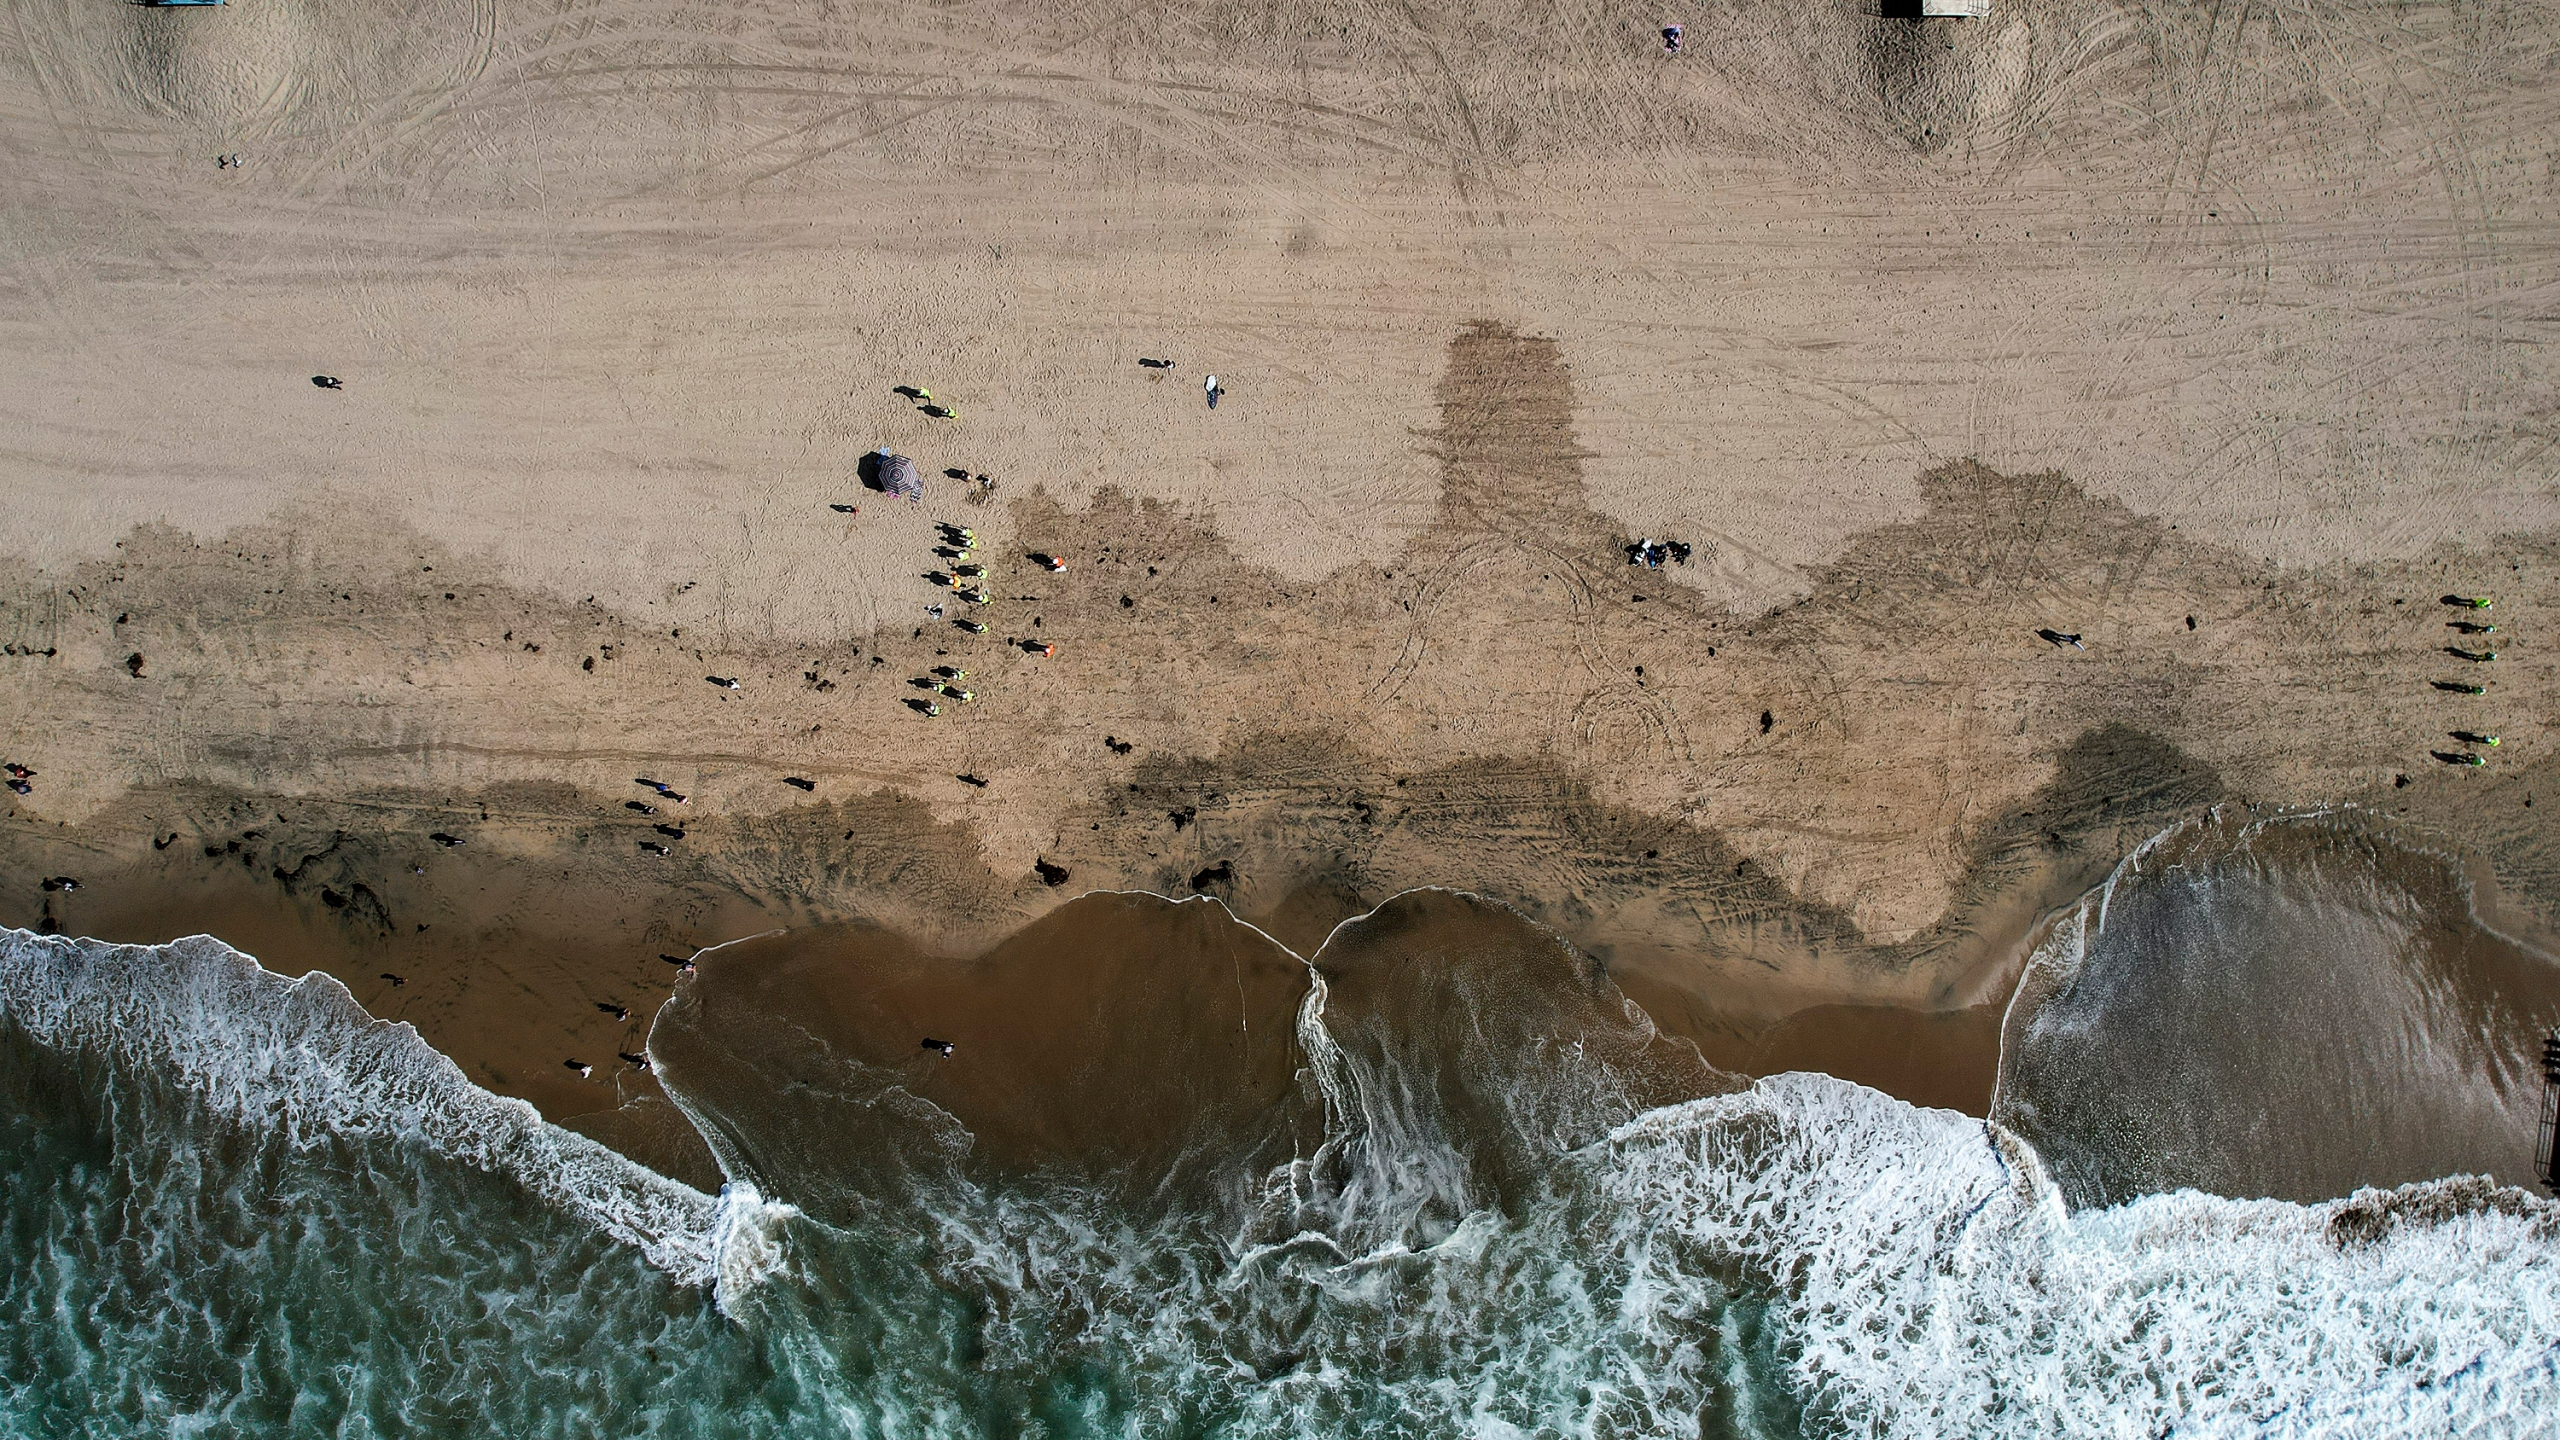 This Monday, Oct. 11, 2021, aerial file photo taken with a drone, shows beachgoers as workers in protective suits continue to clean the contaminated beach in Huntington Beach, Calif. The amount of crude oil spilled in an offshore pipeline leak in Southern California is believed to be close to about 25,000 gallons, a Coast Guard official said Thursday Oct. 14, 2021. (AP Photo/Ringo H.W. Chiu, File)